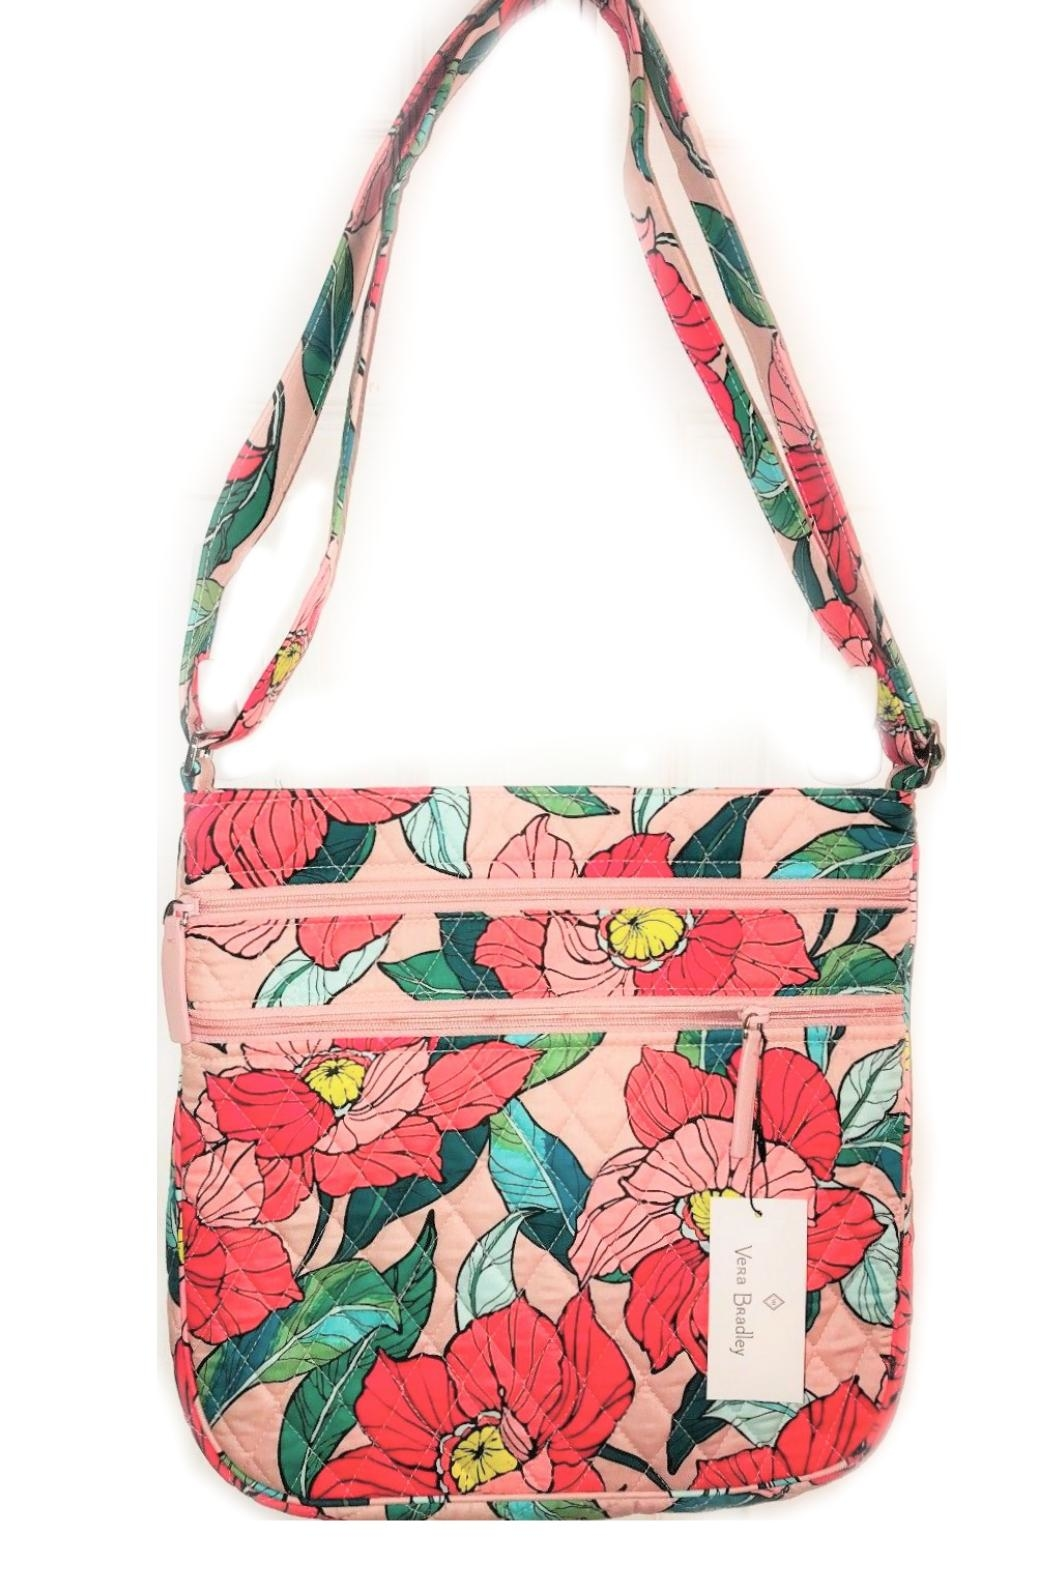 Vera Bradley Vintage Floral Triple-Zip from Kentucky by Mimi s Gift ... 79d8c107a4